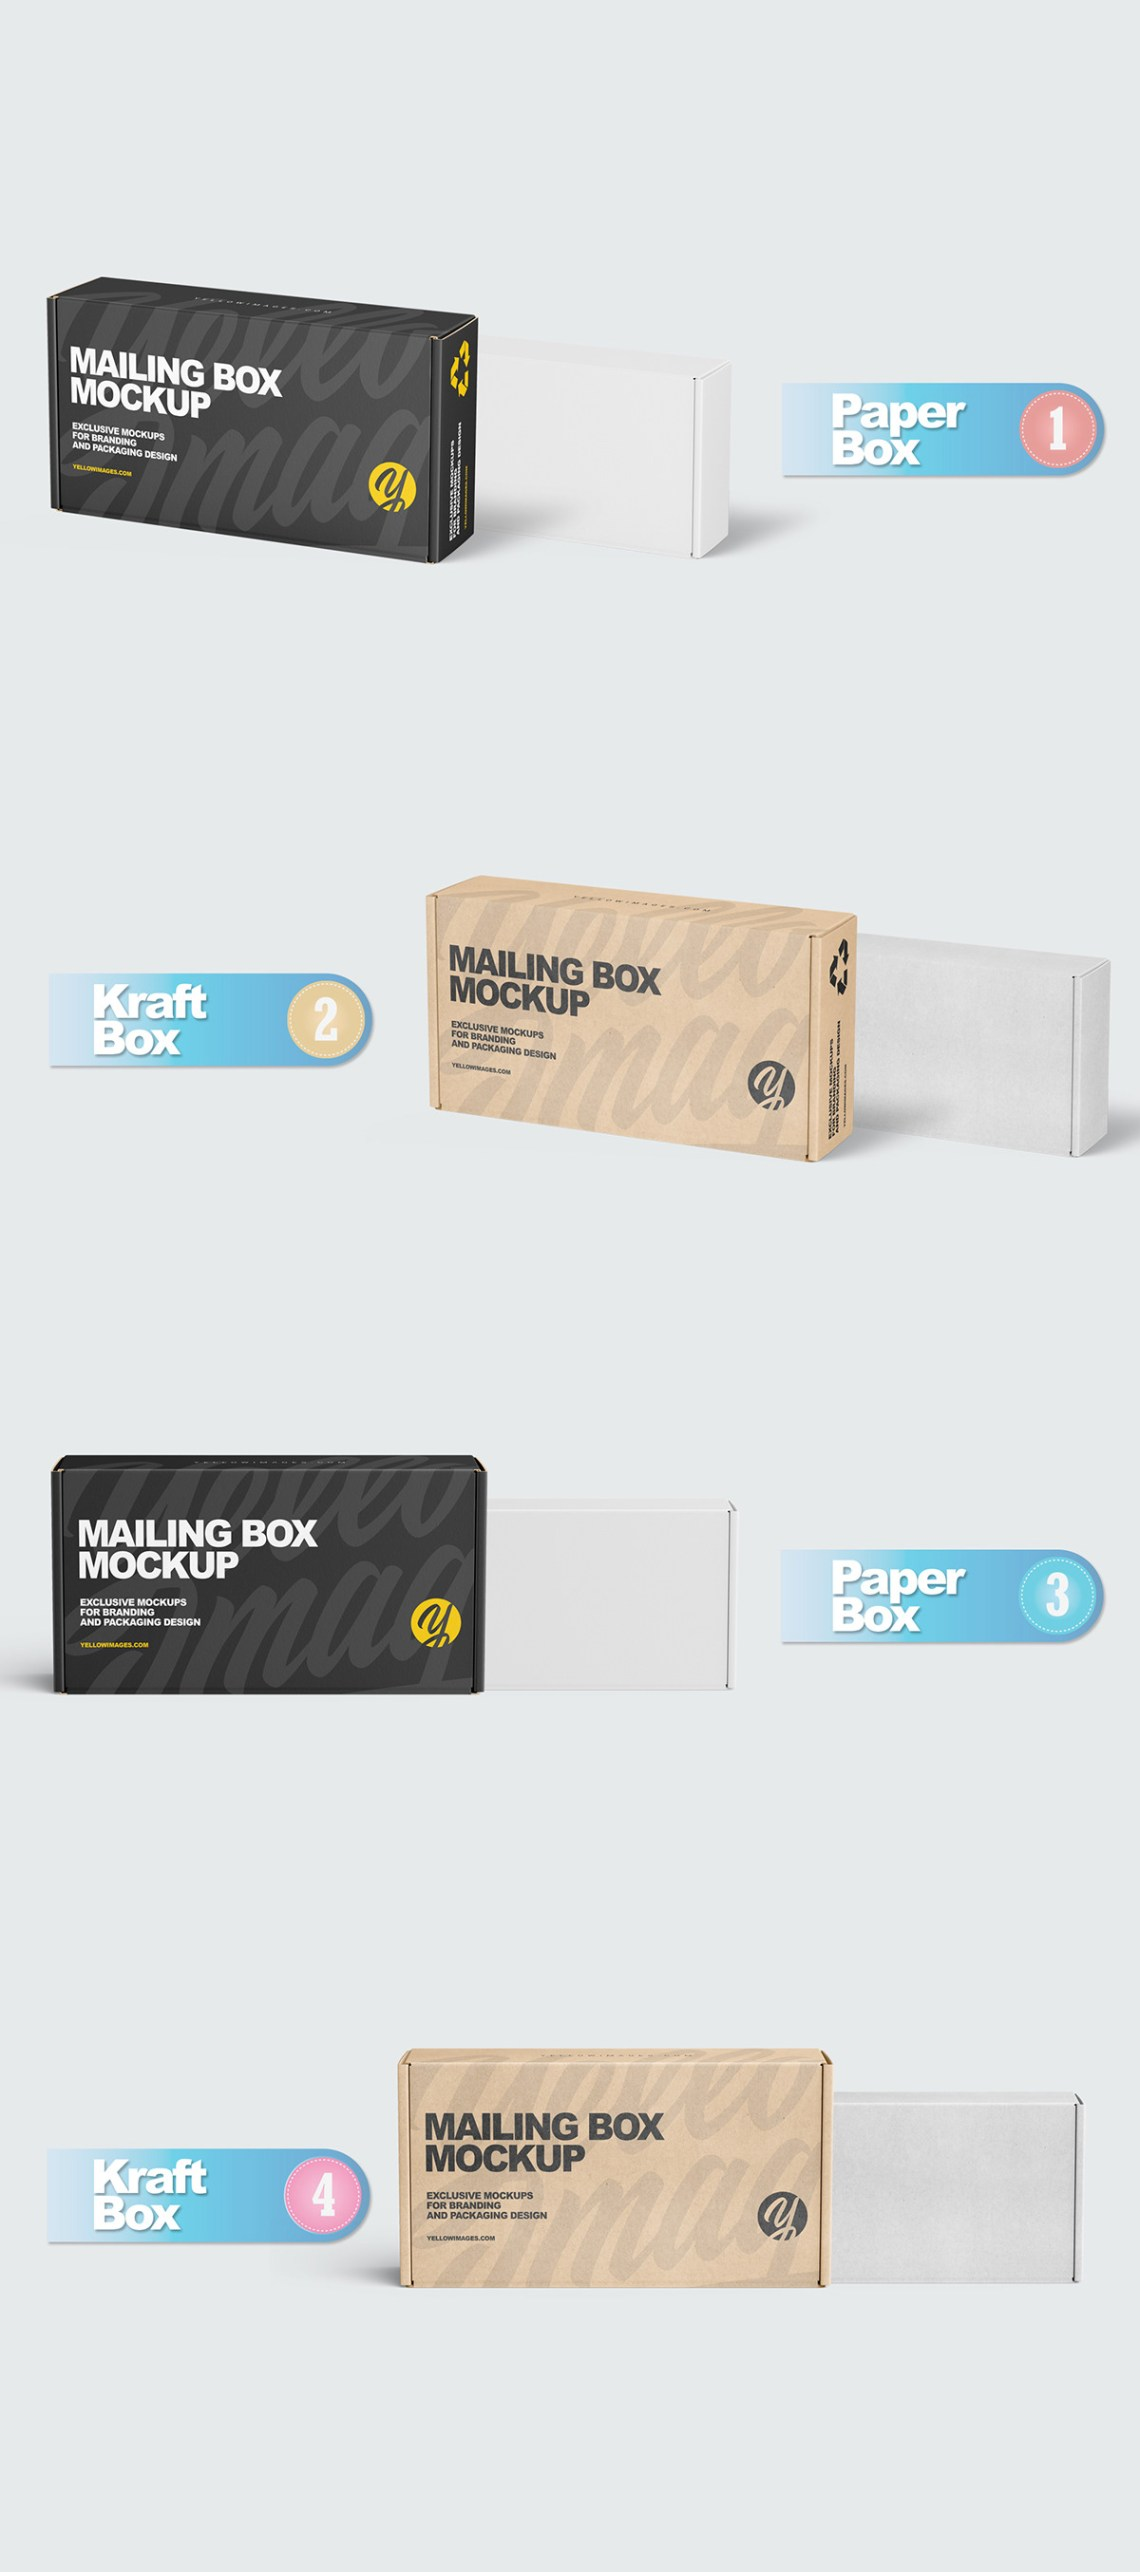 Download Mockup Design Toolkit Yellowimages